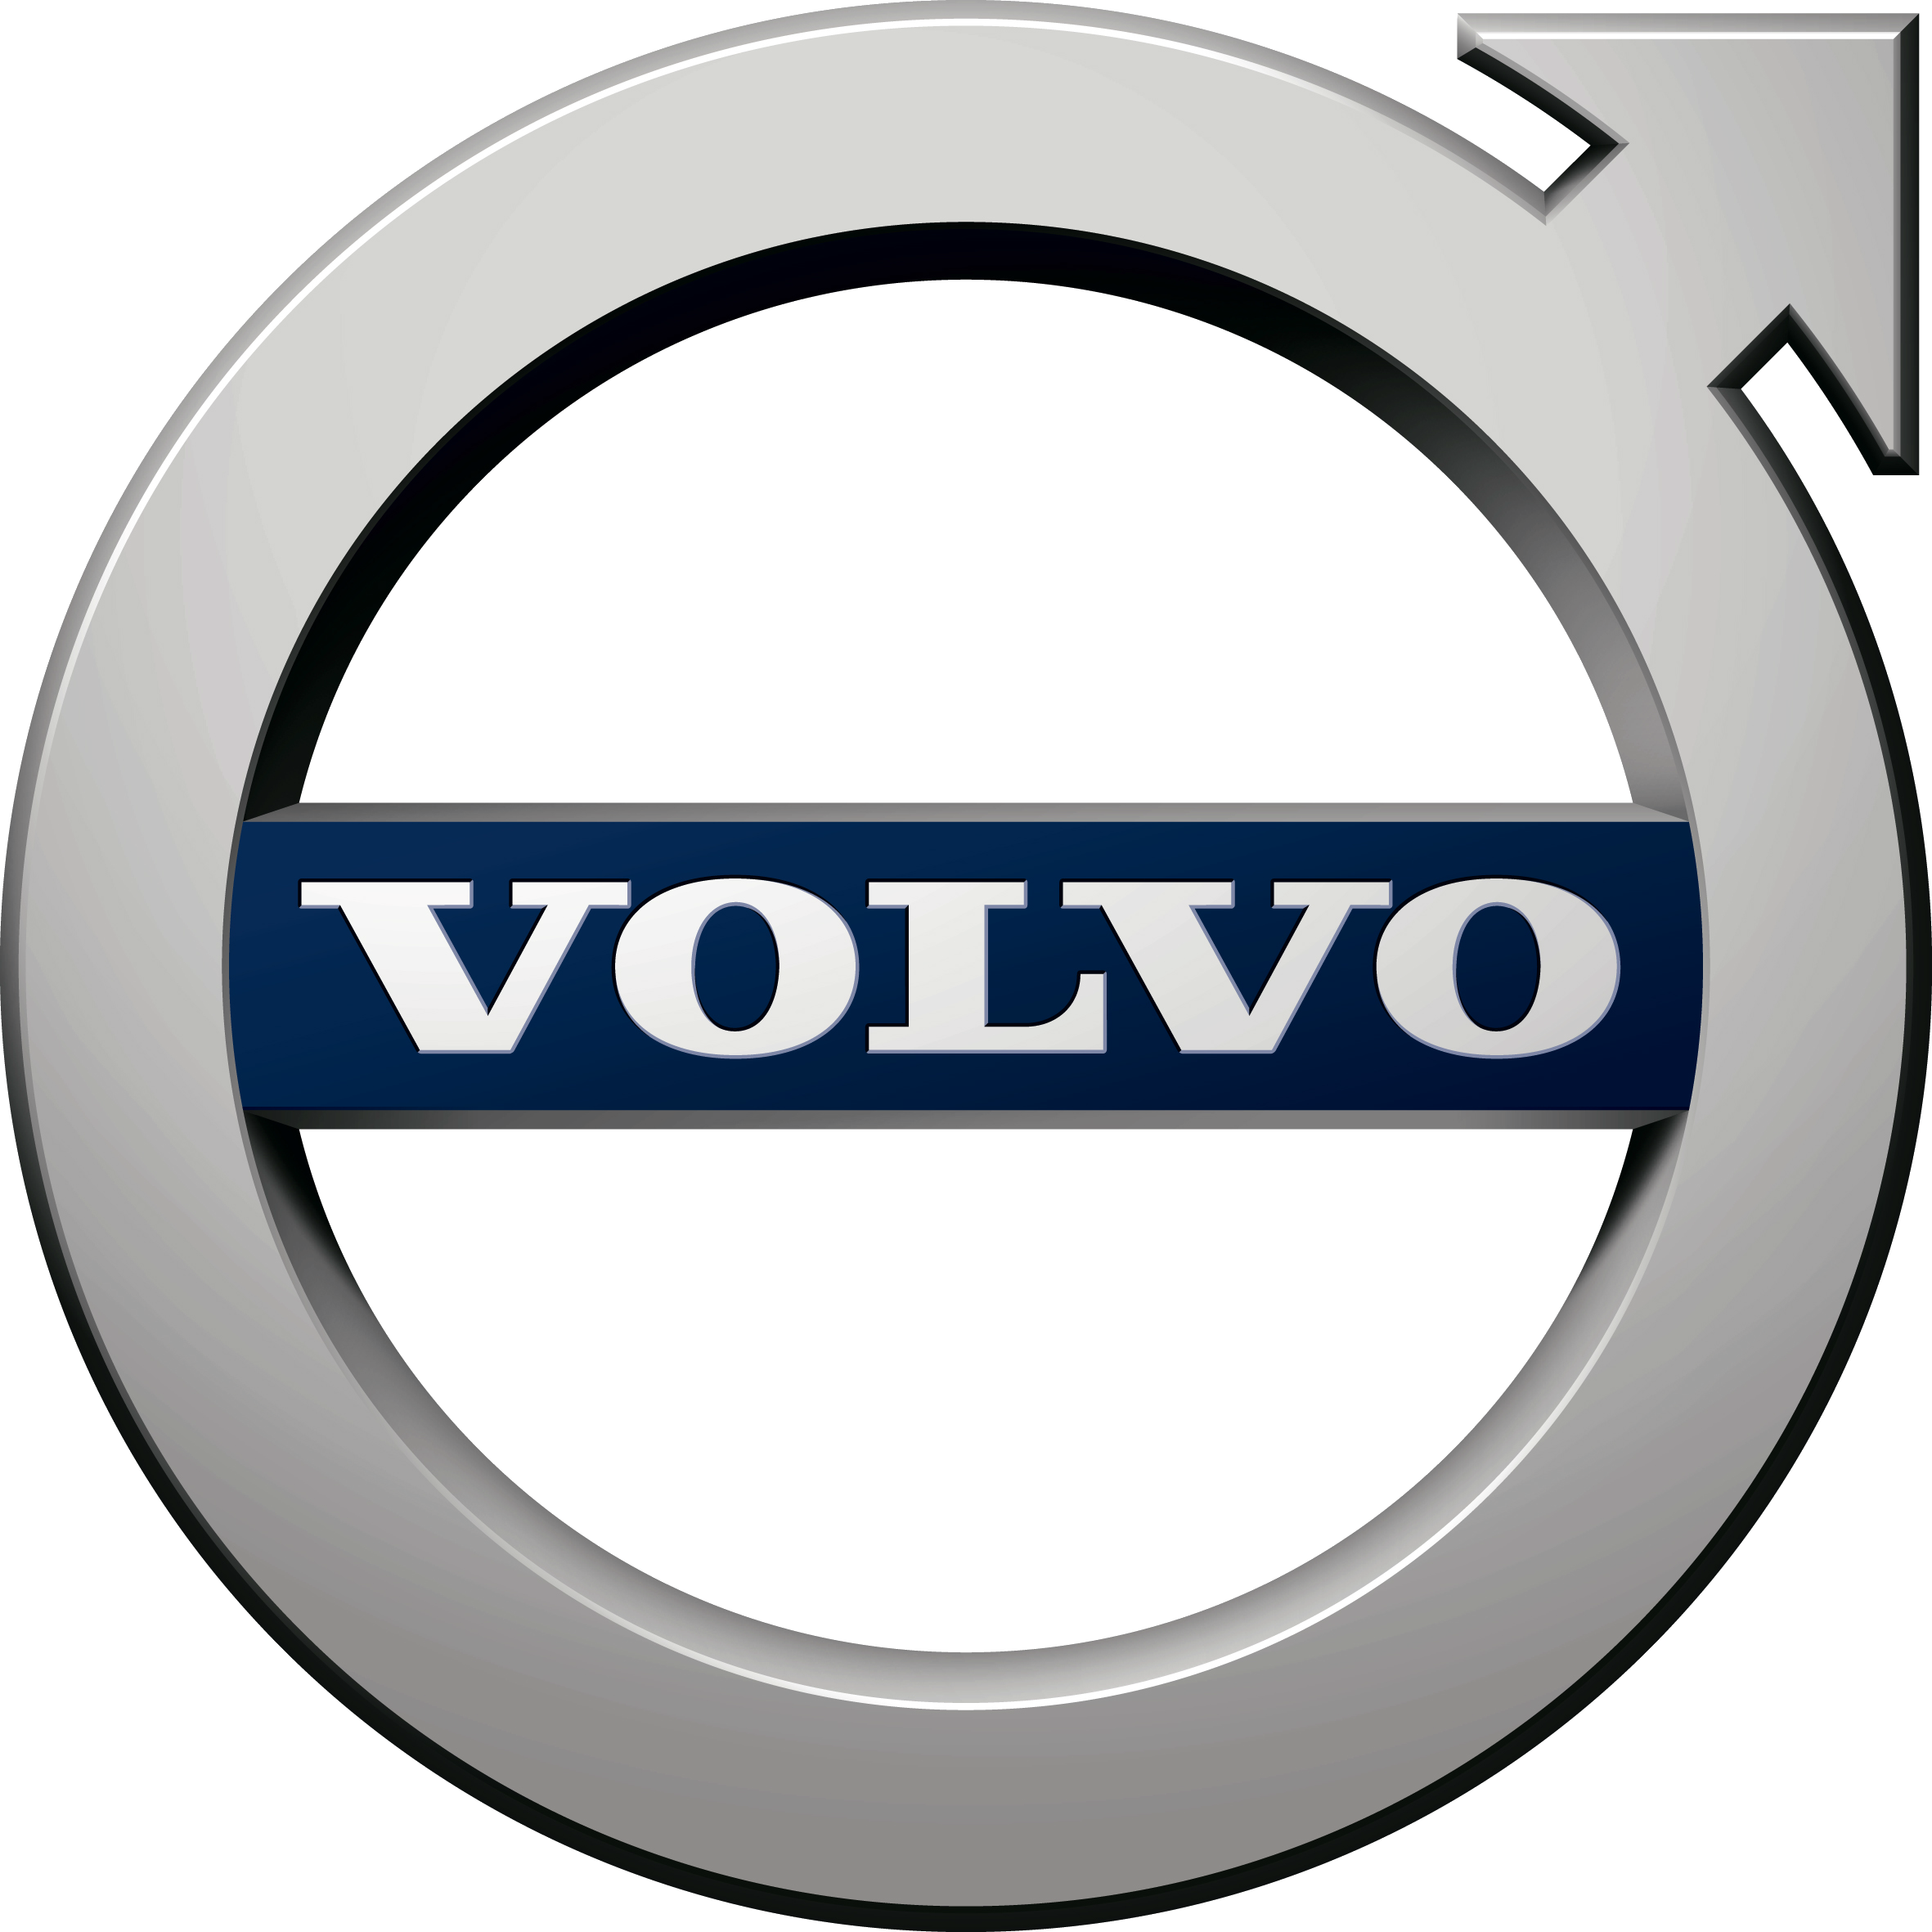 Volvo S60 Grey Car Full Hd Wallpaper: Volvo Logo Wallpapers HD Backgrounds